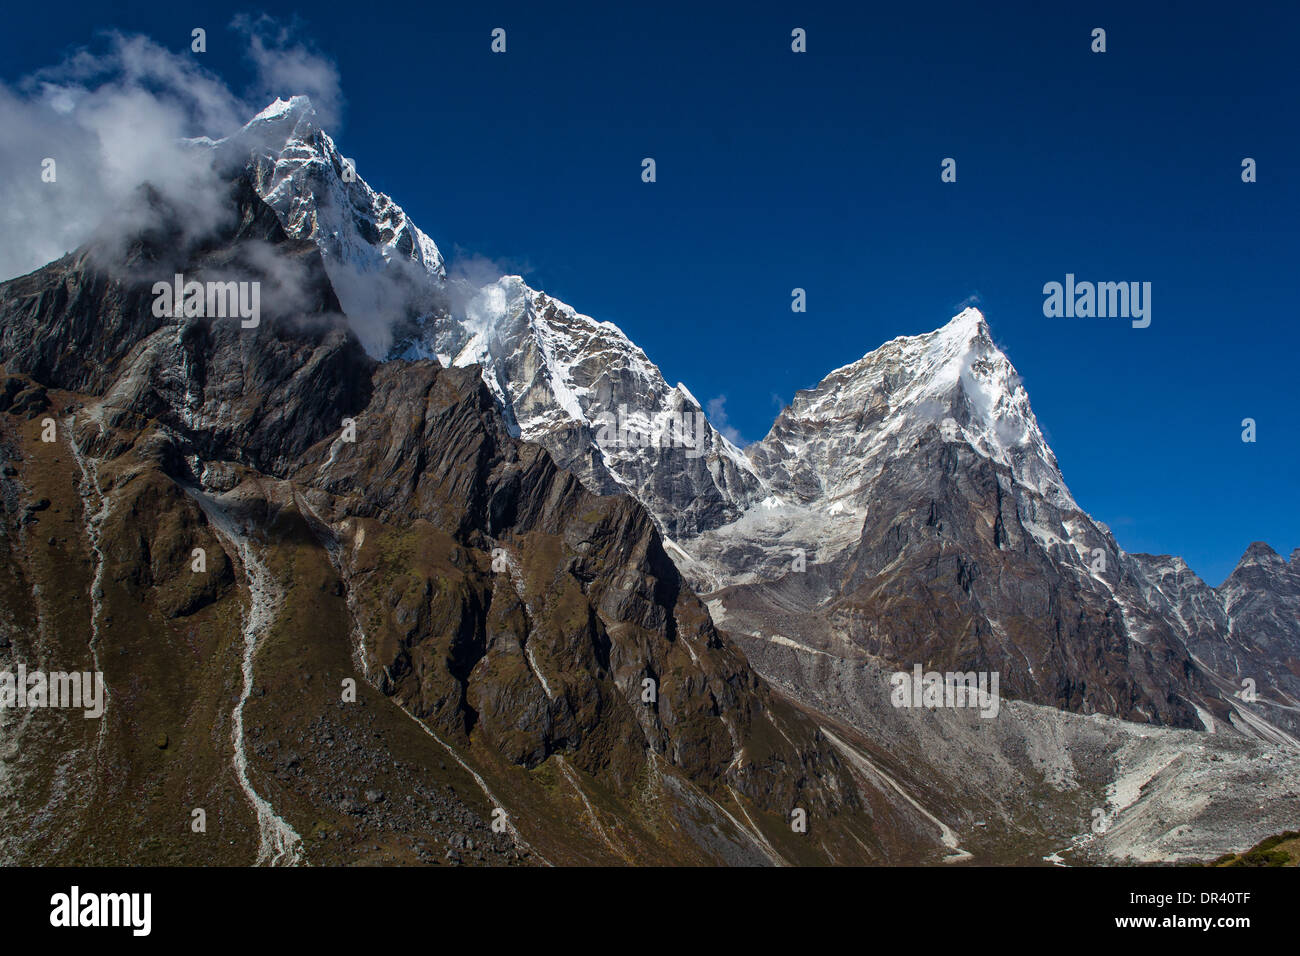 Snow covered mountains in Himalayas - Stock Image